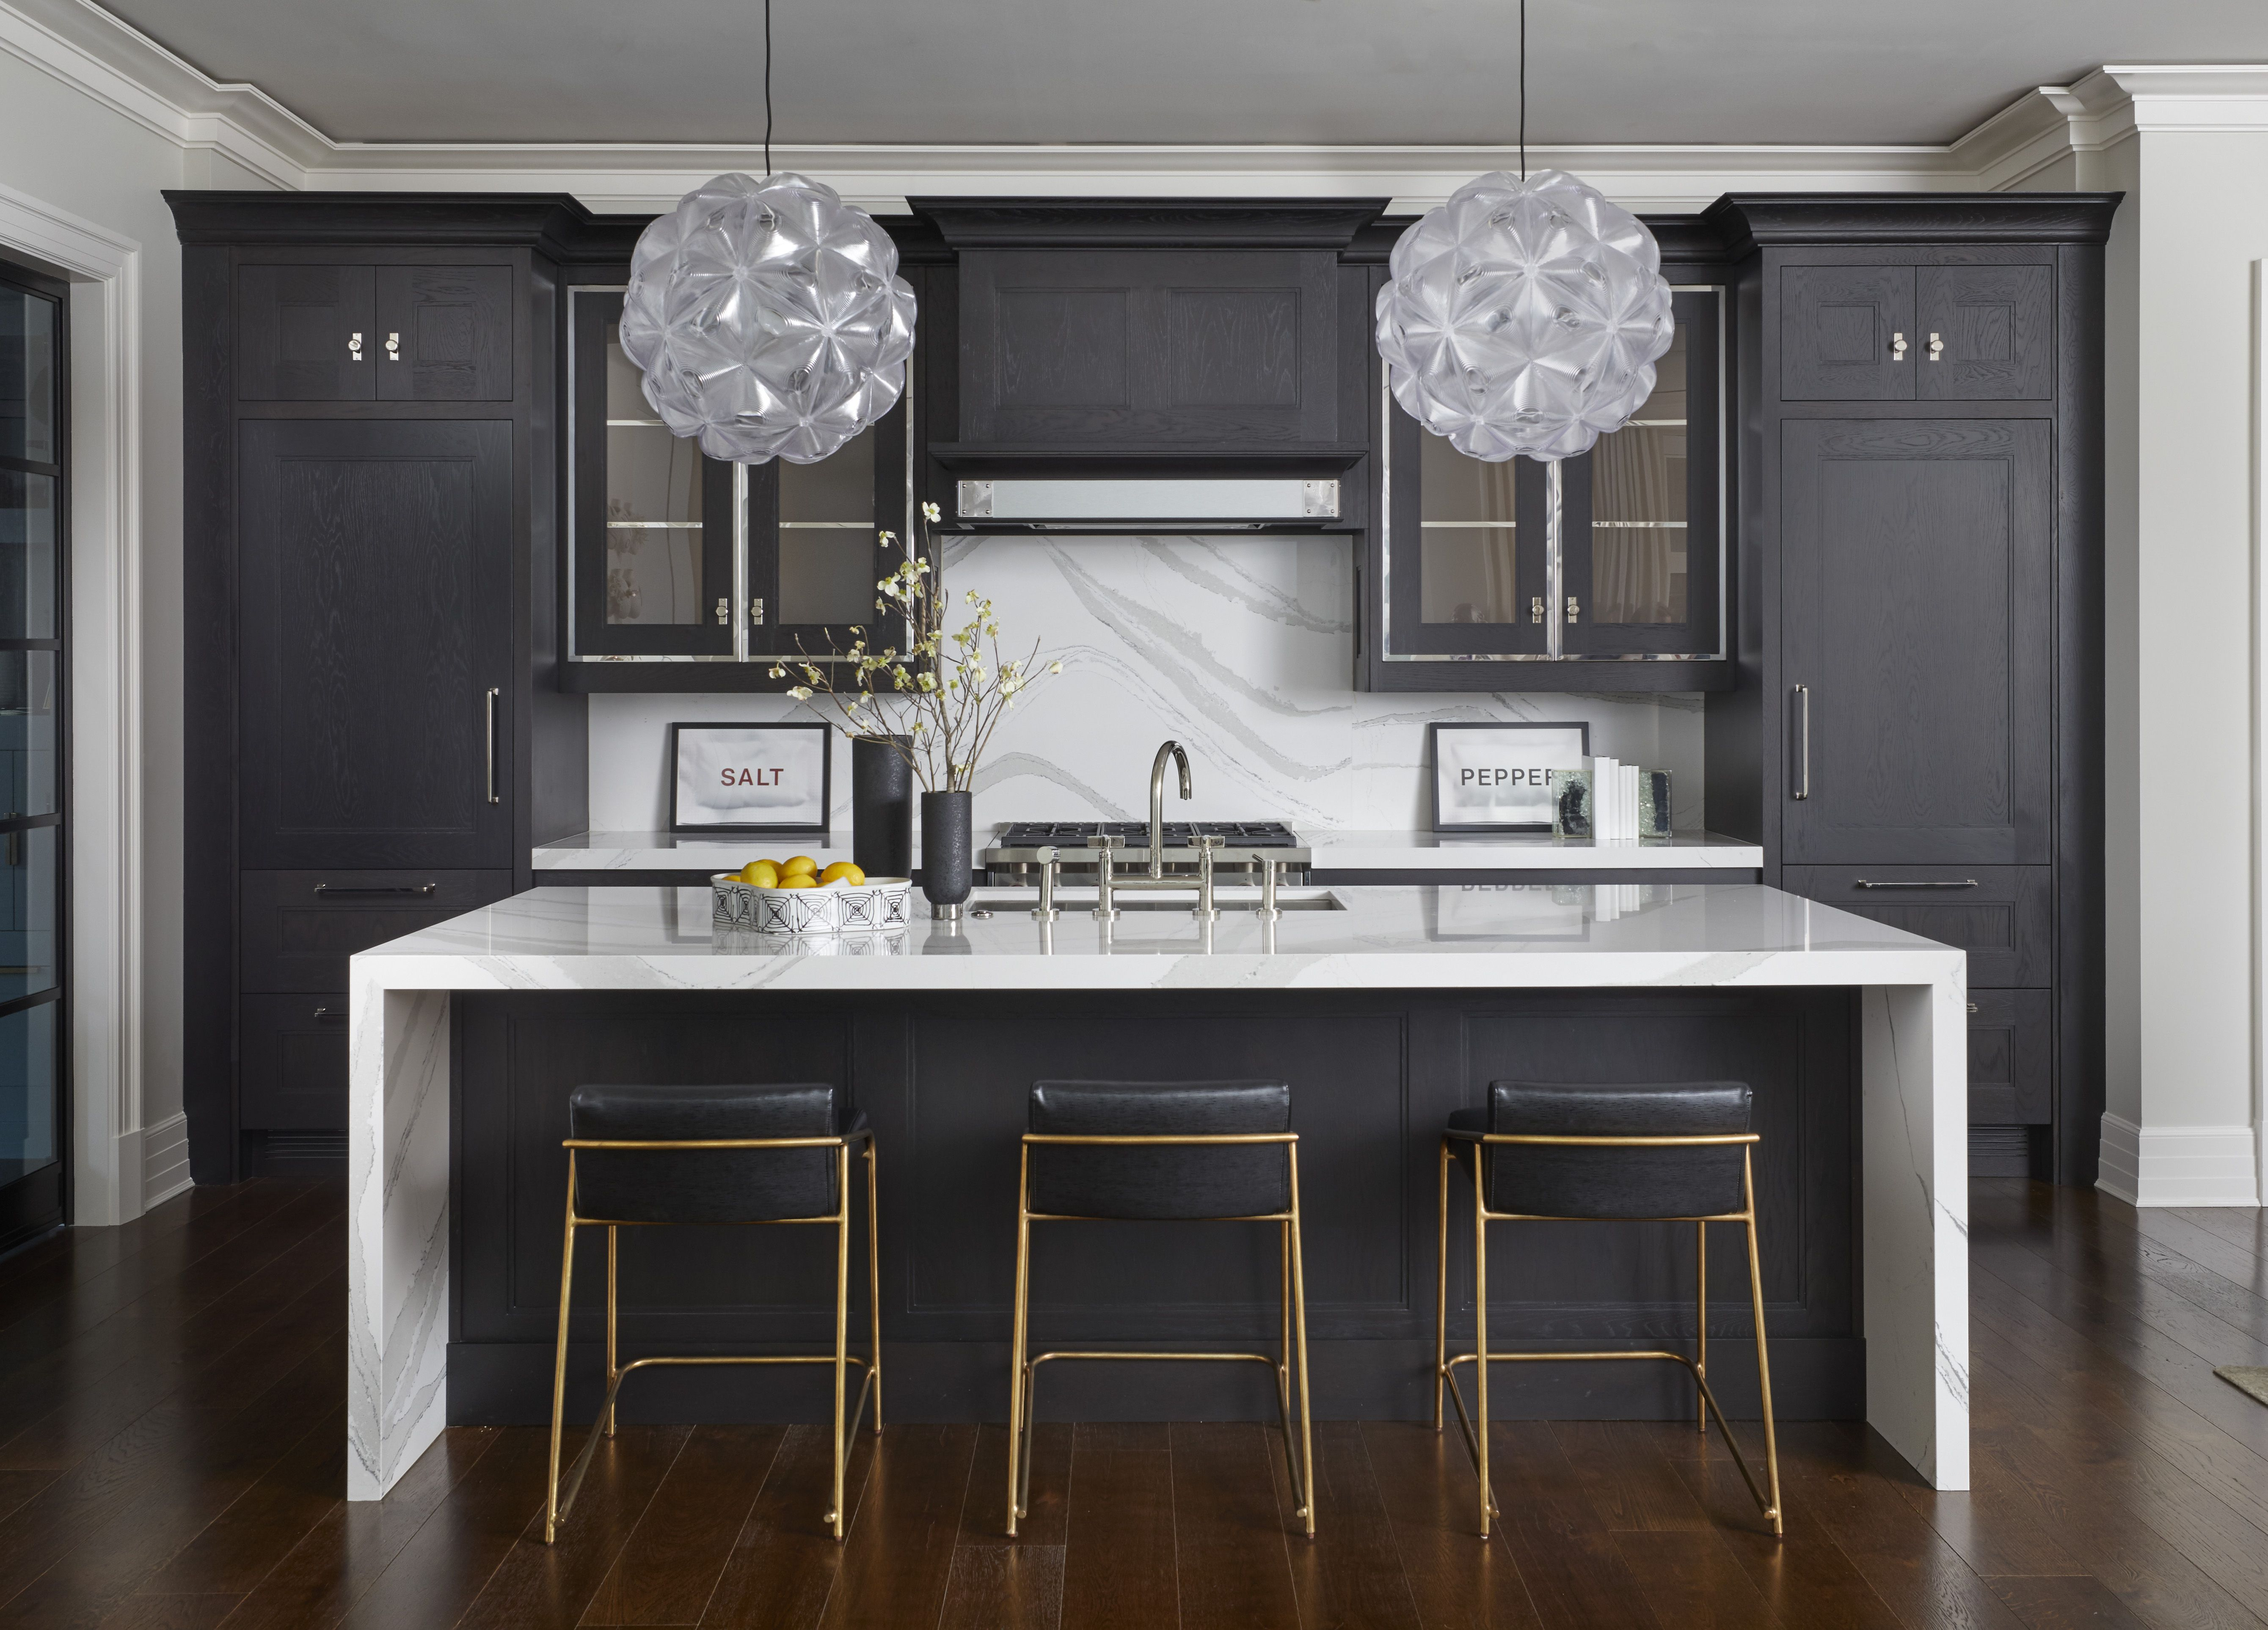 Kitchen Trends 2020 Designers Share Their Kitchen Predictions For 2020